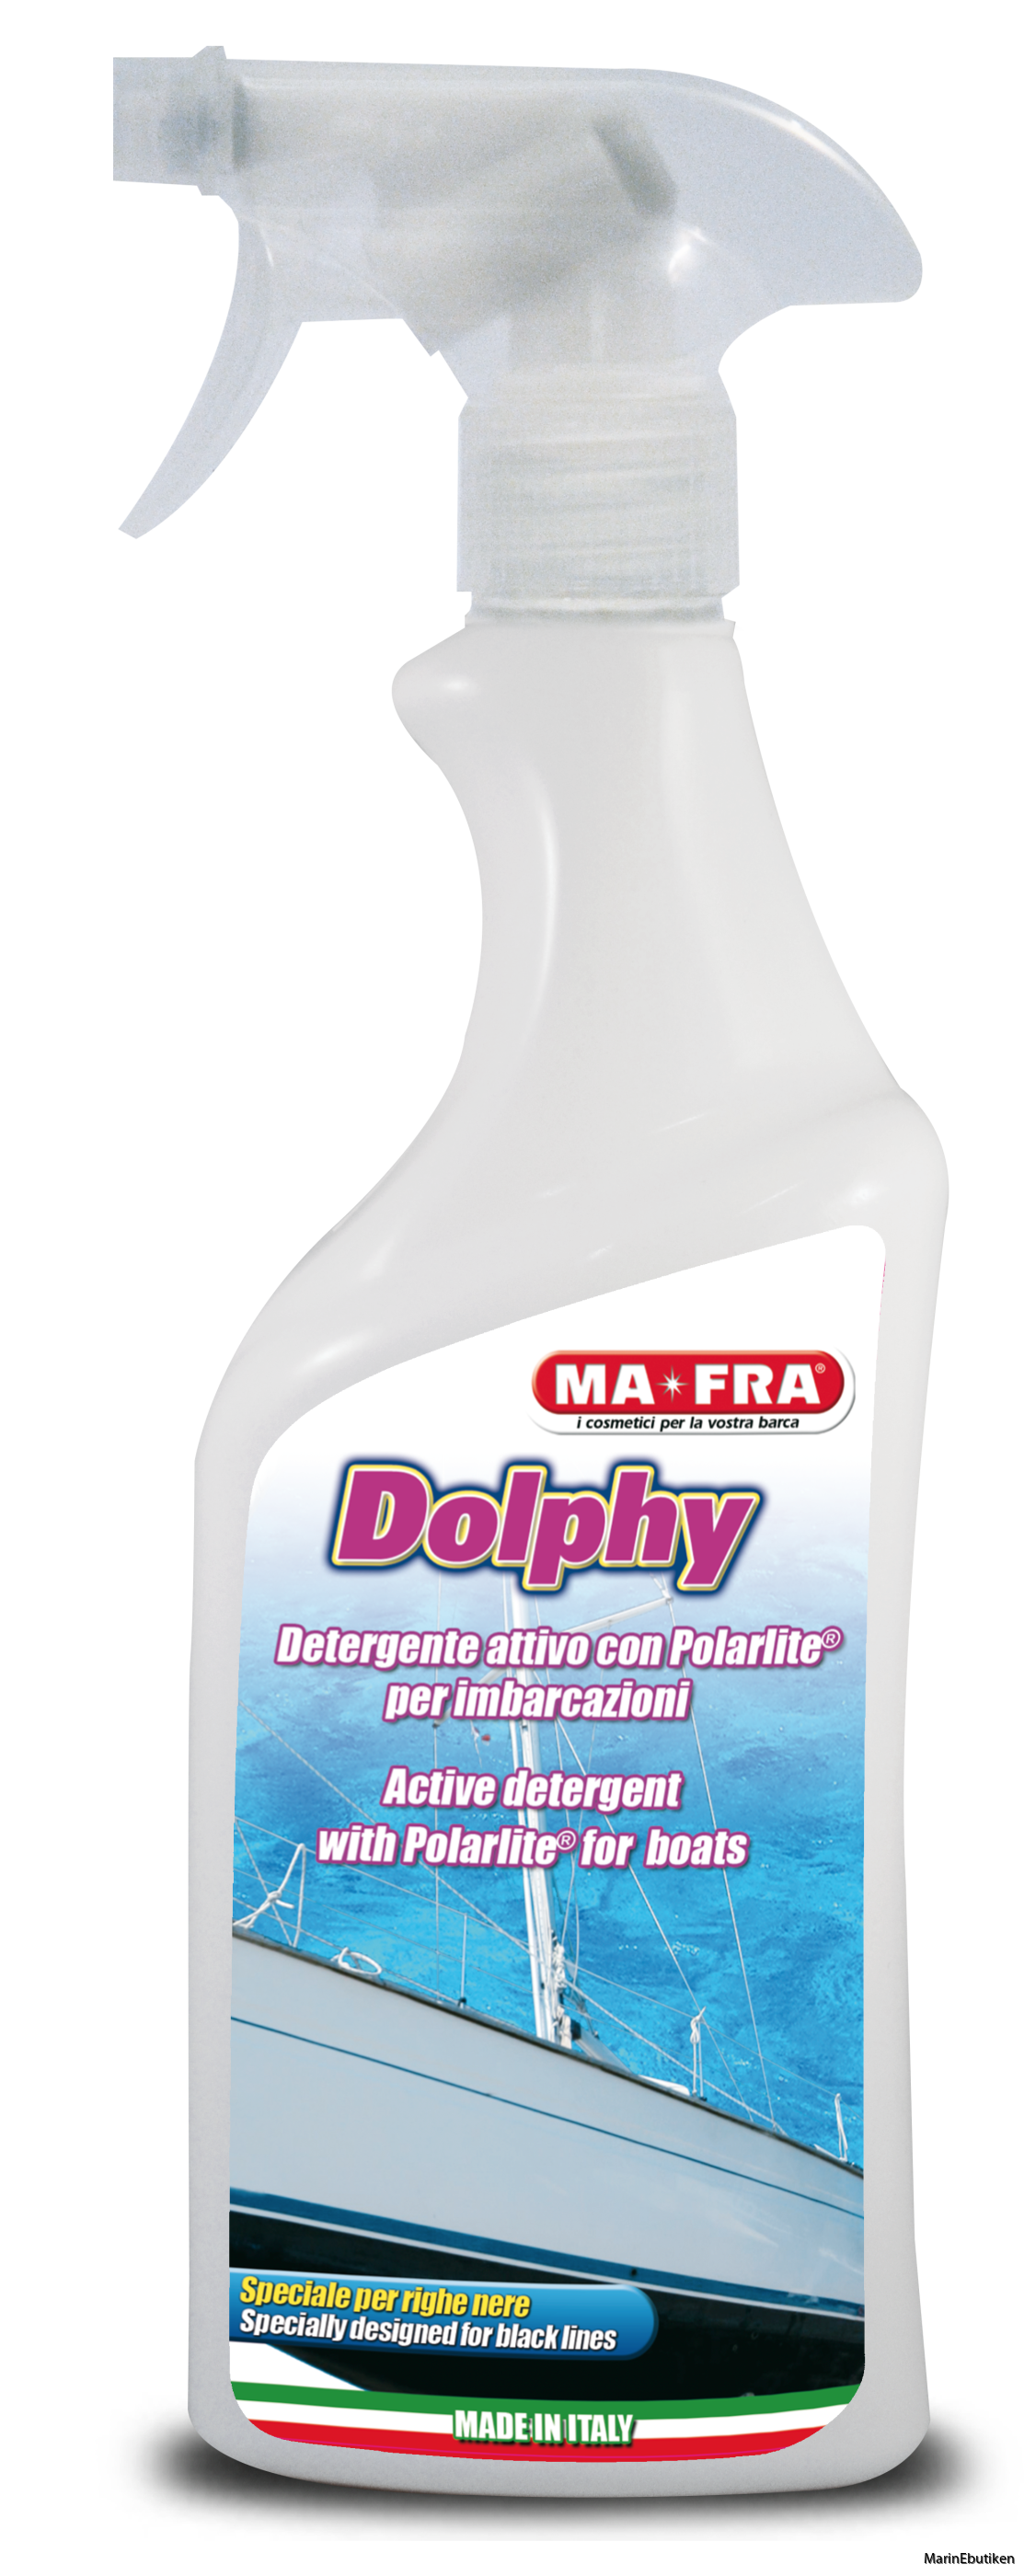 Dolphy_750ml_2015